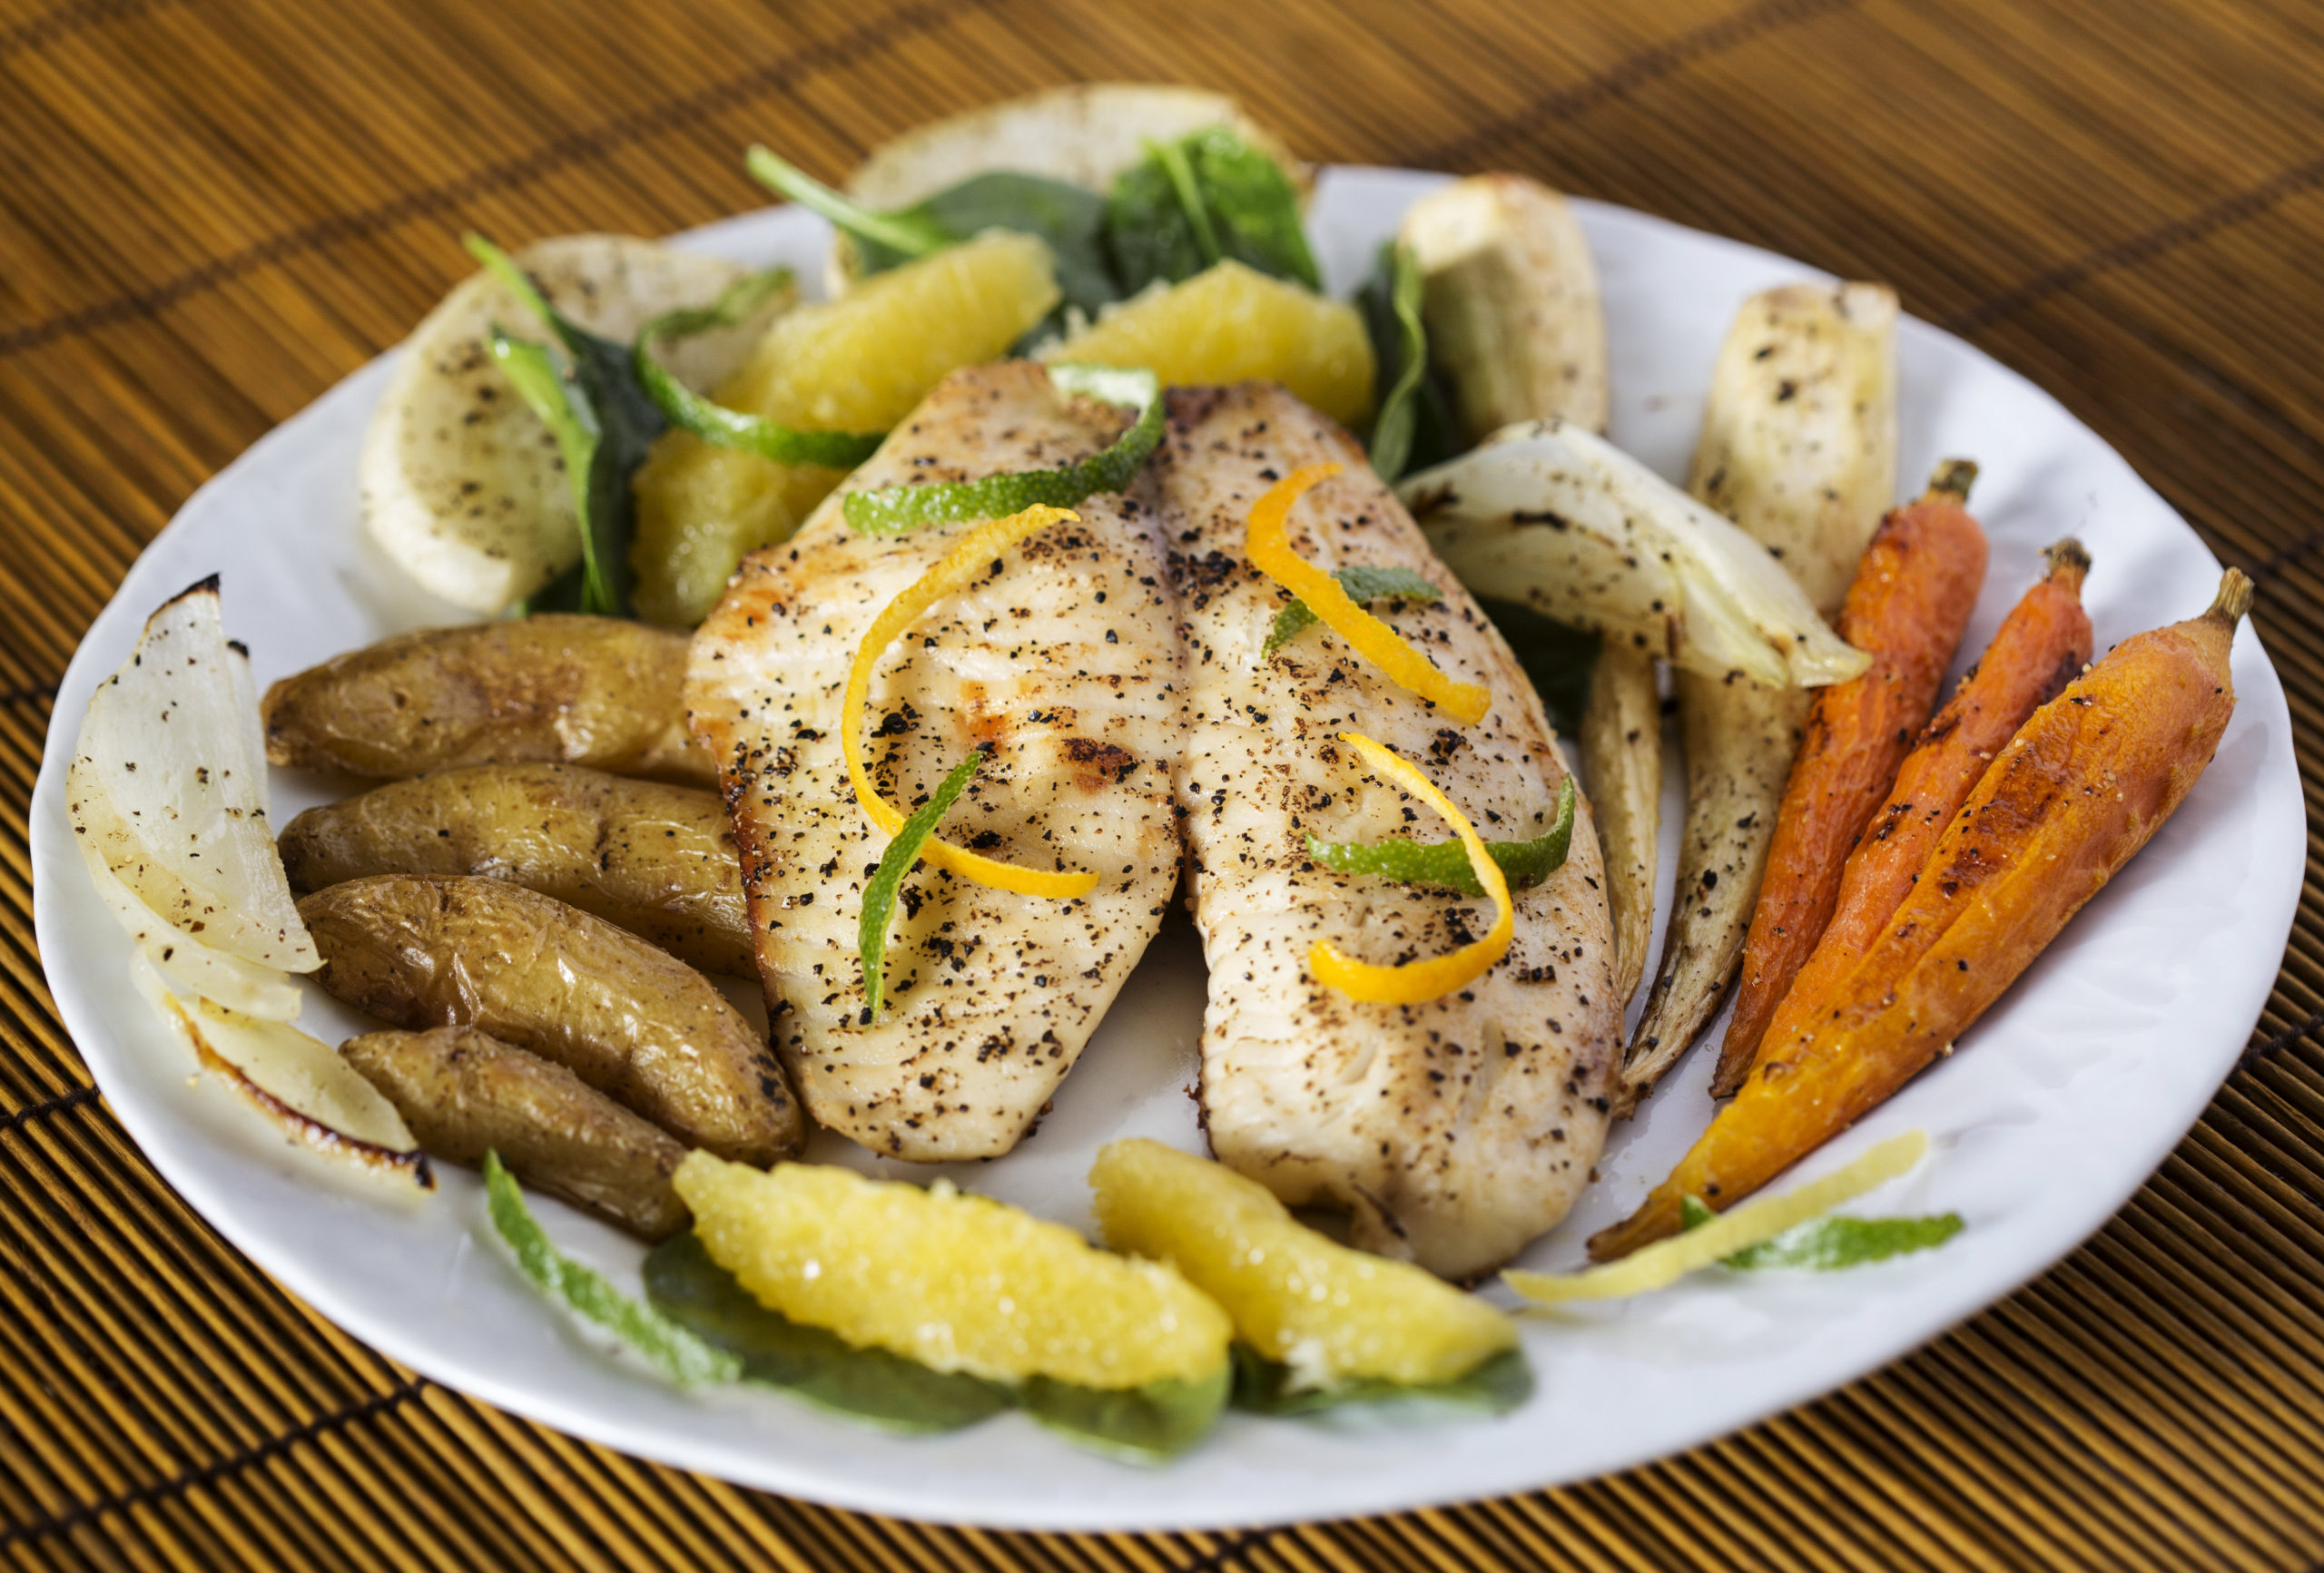 Oven Roasted Tilapia with Winter Vegetables and Citrus Vinaigrette